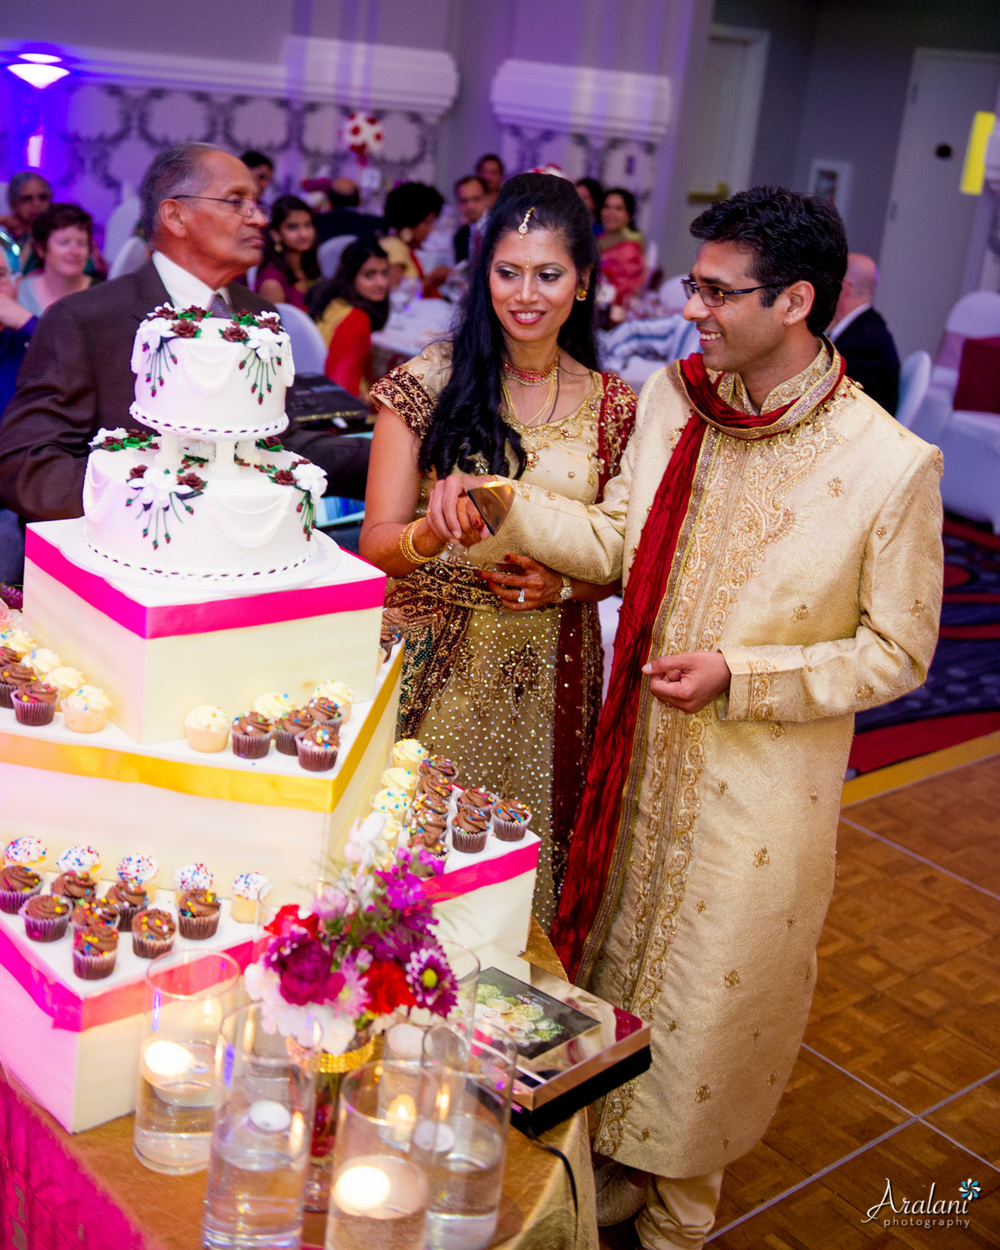 Portland_Indian_Wedding0113.jpg